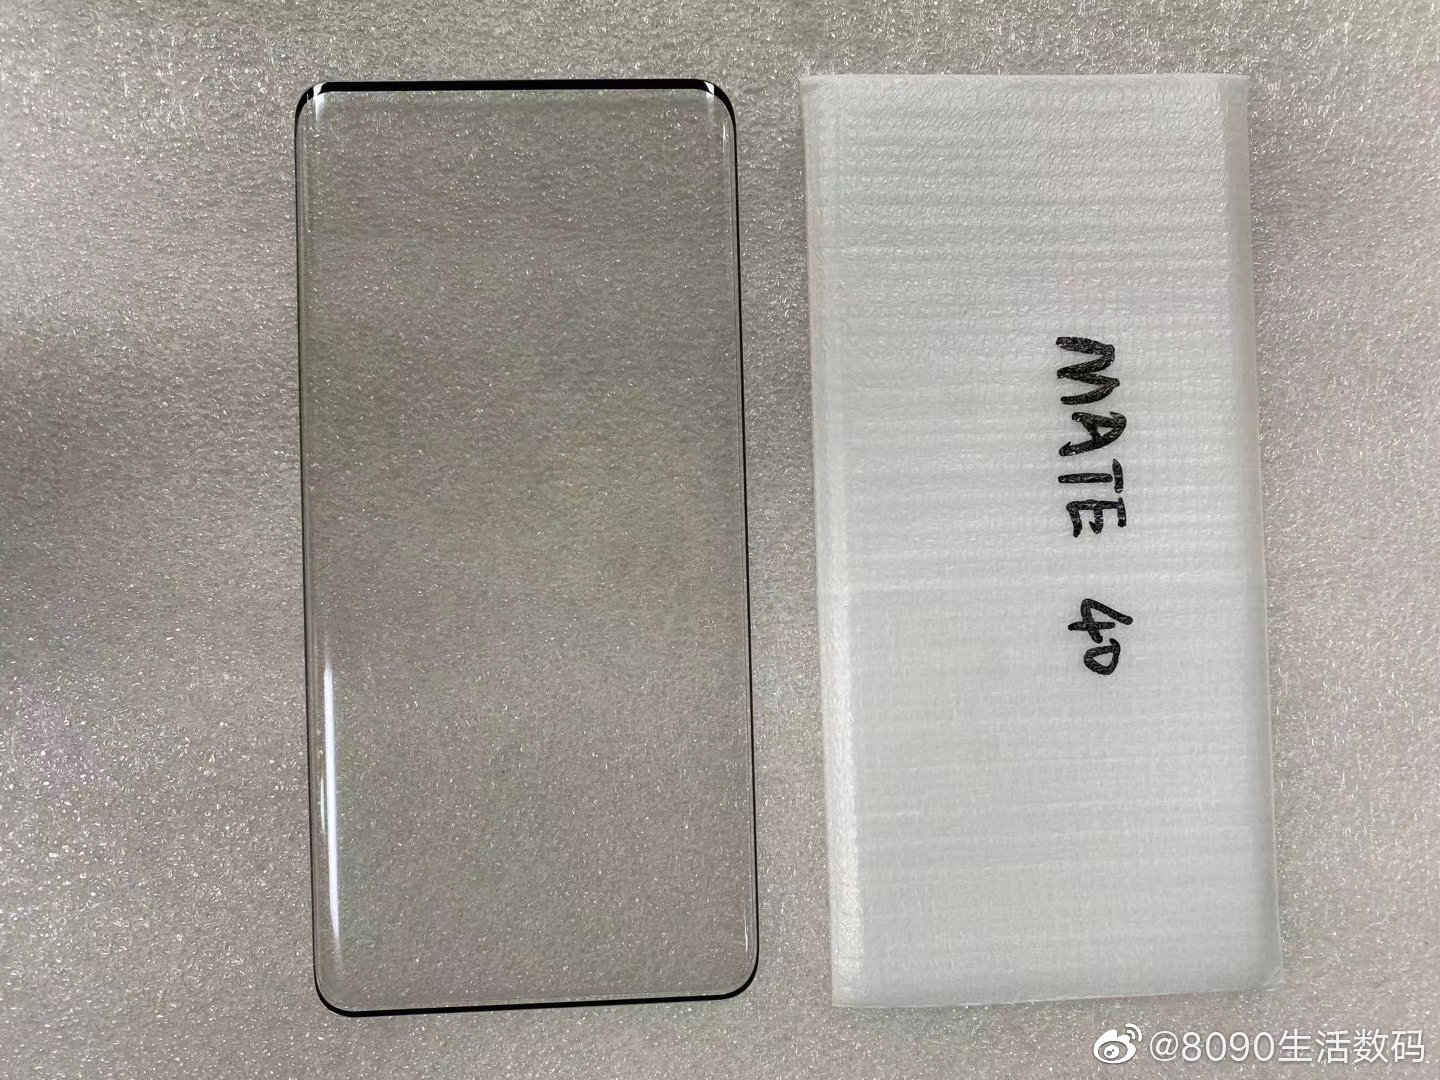 Huawei_Mate_40 case leaked